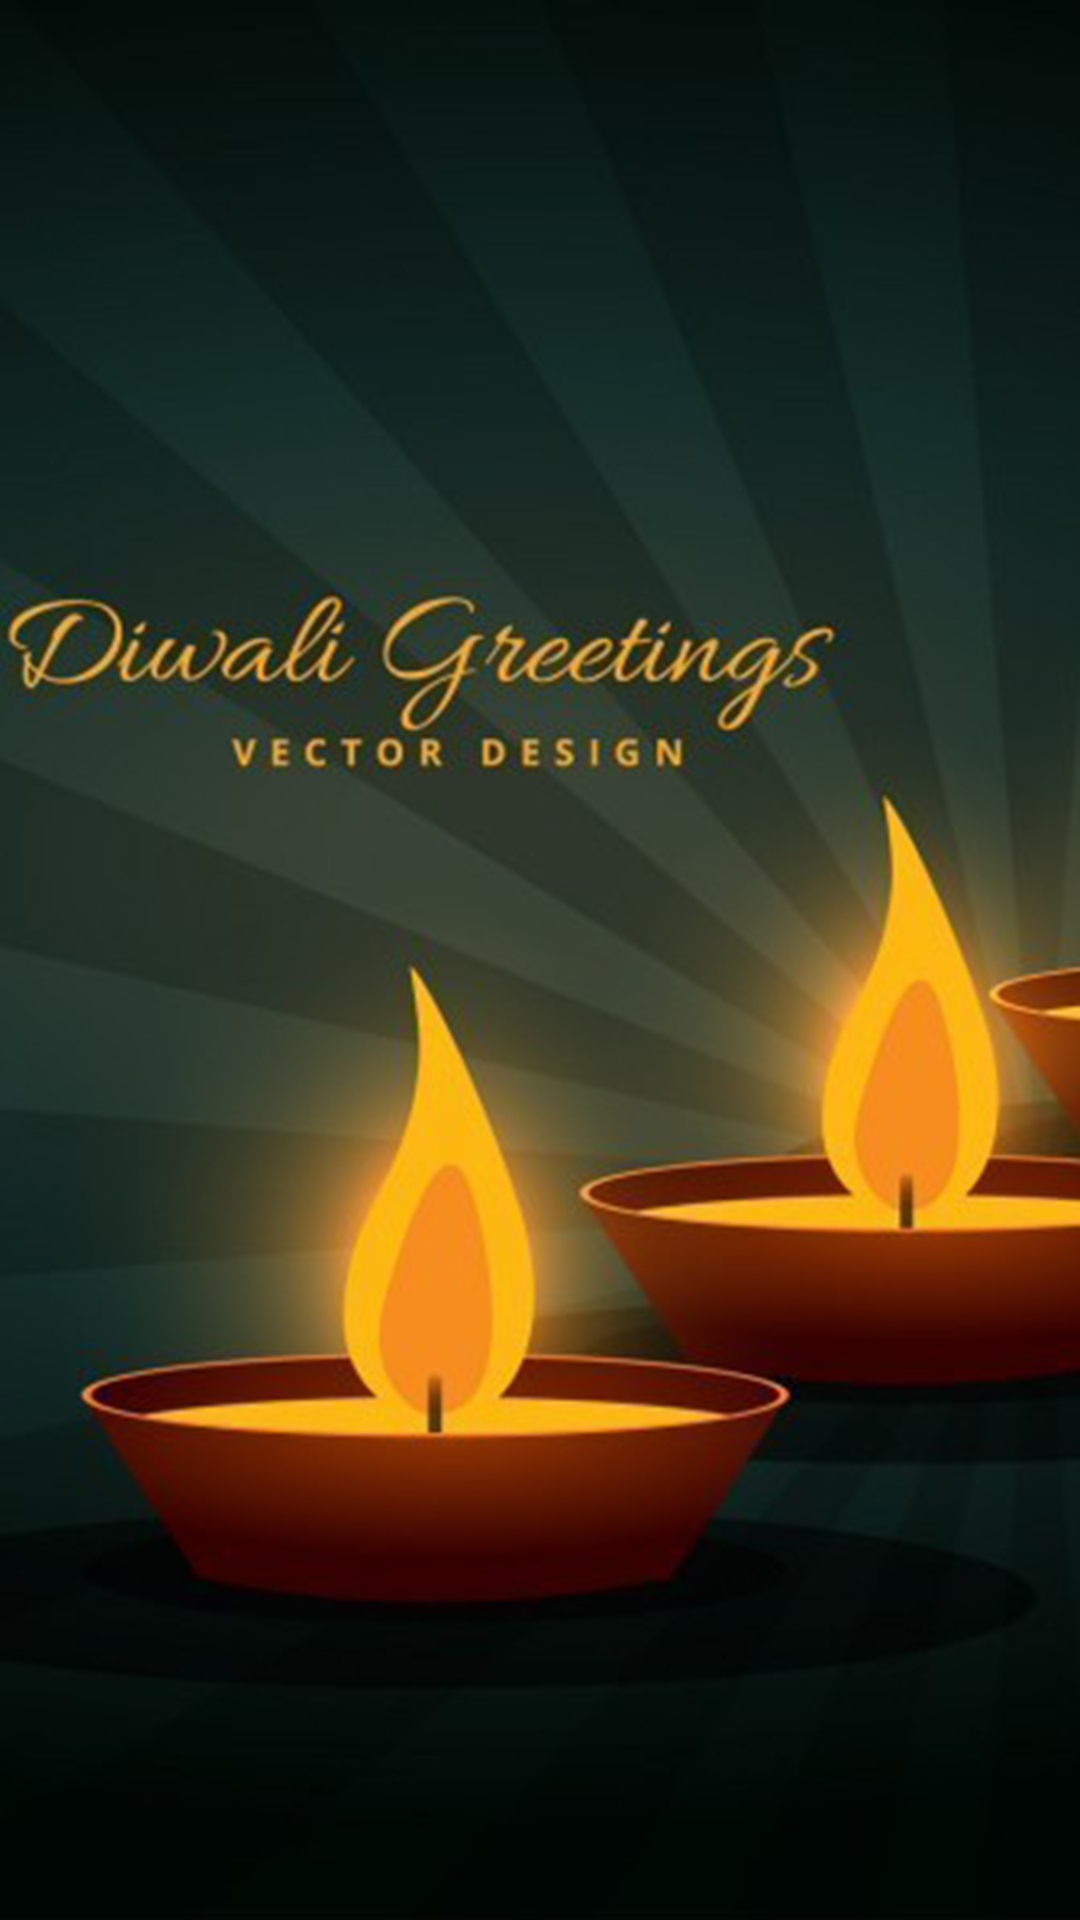 Diwali Greetings Background Happy Diwali Diwali Lights Diwali